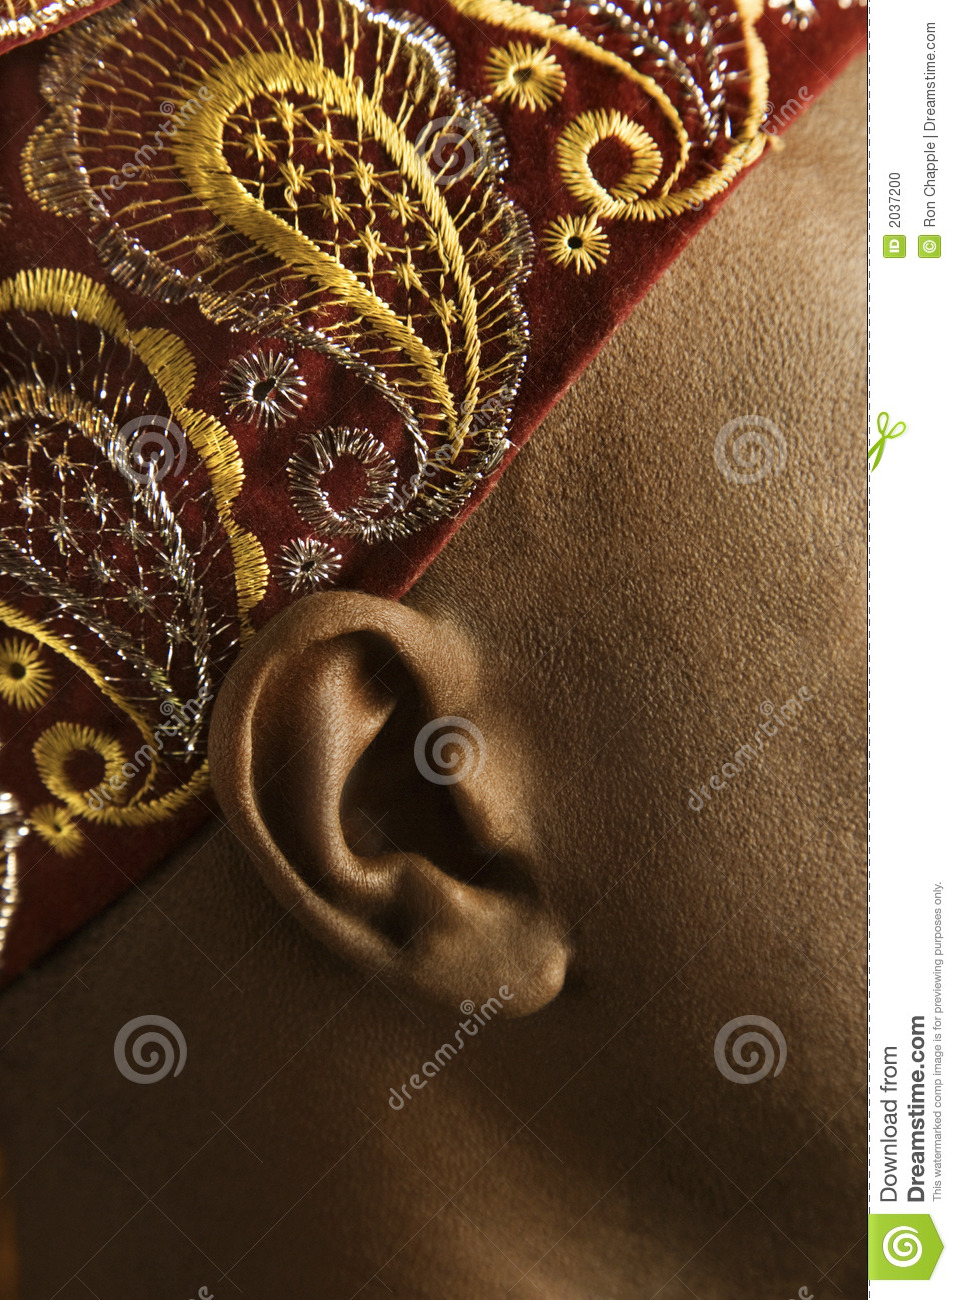 Close-up of man s ear and African hat.